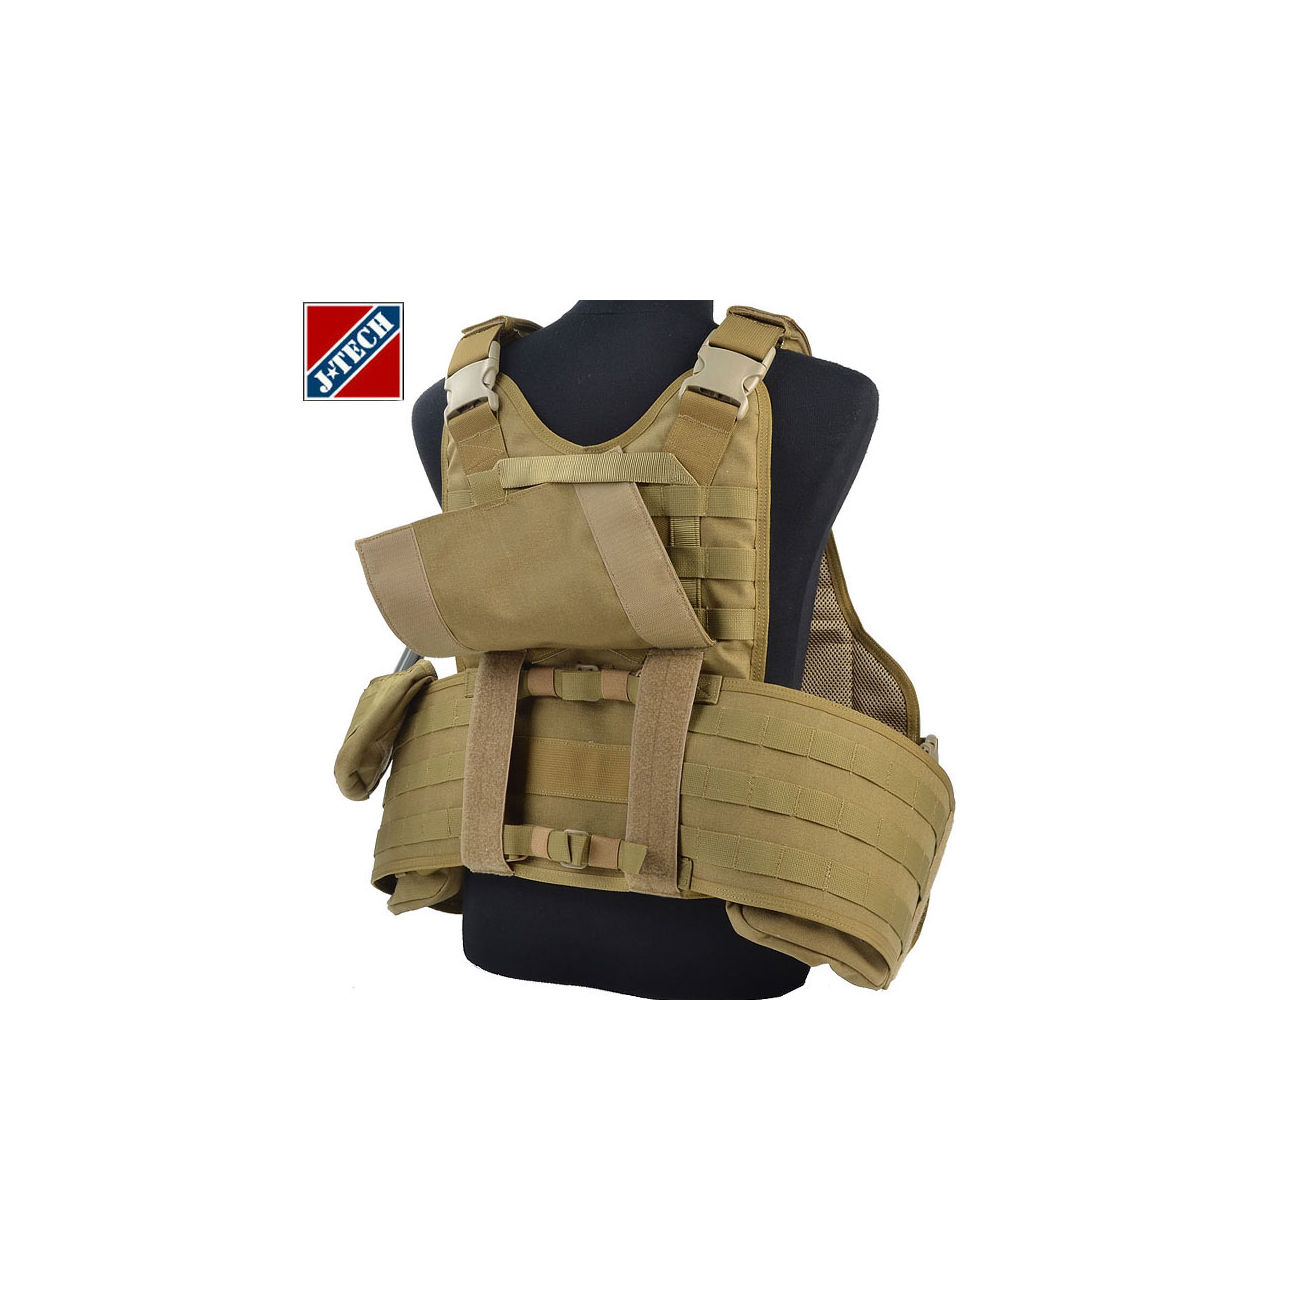 J-Tech USMC Aegis IV Outer Shell Plate Carrier coyote 3